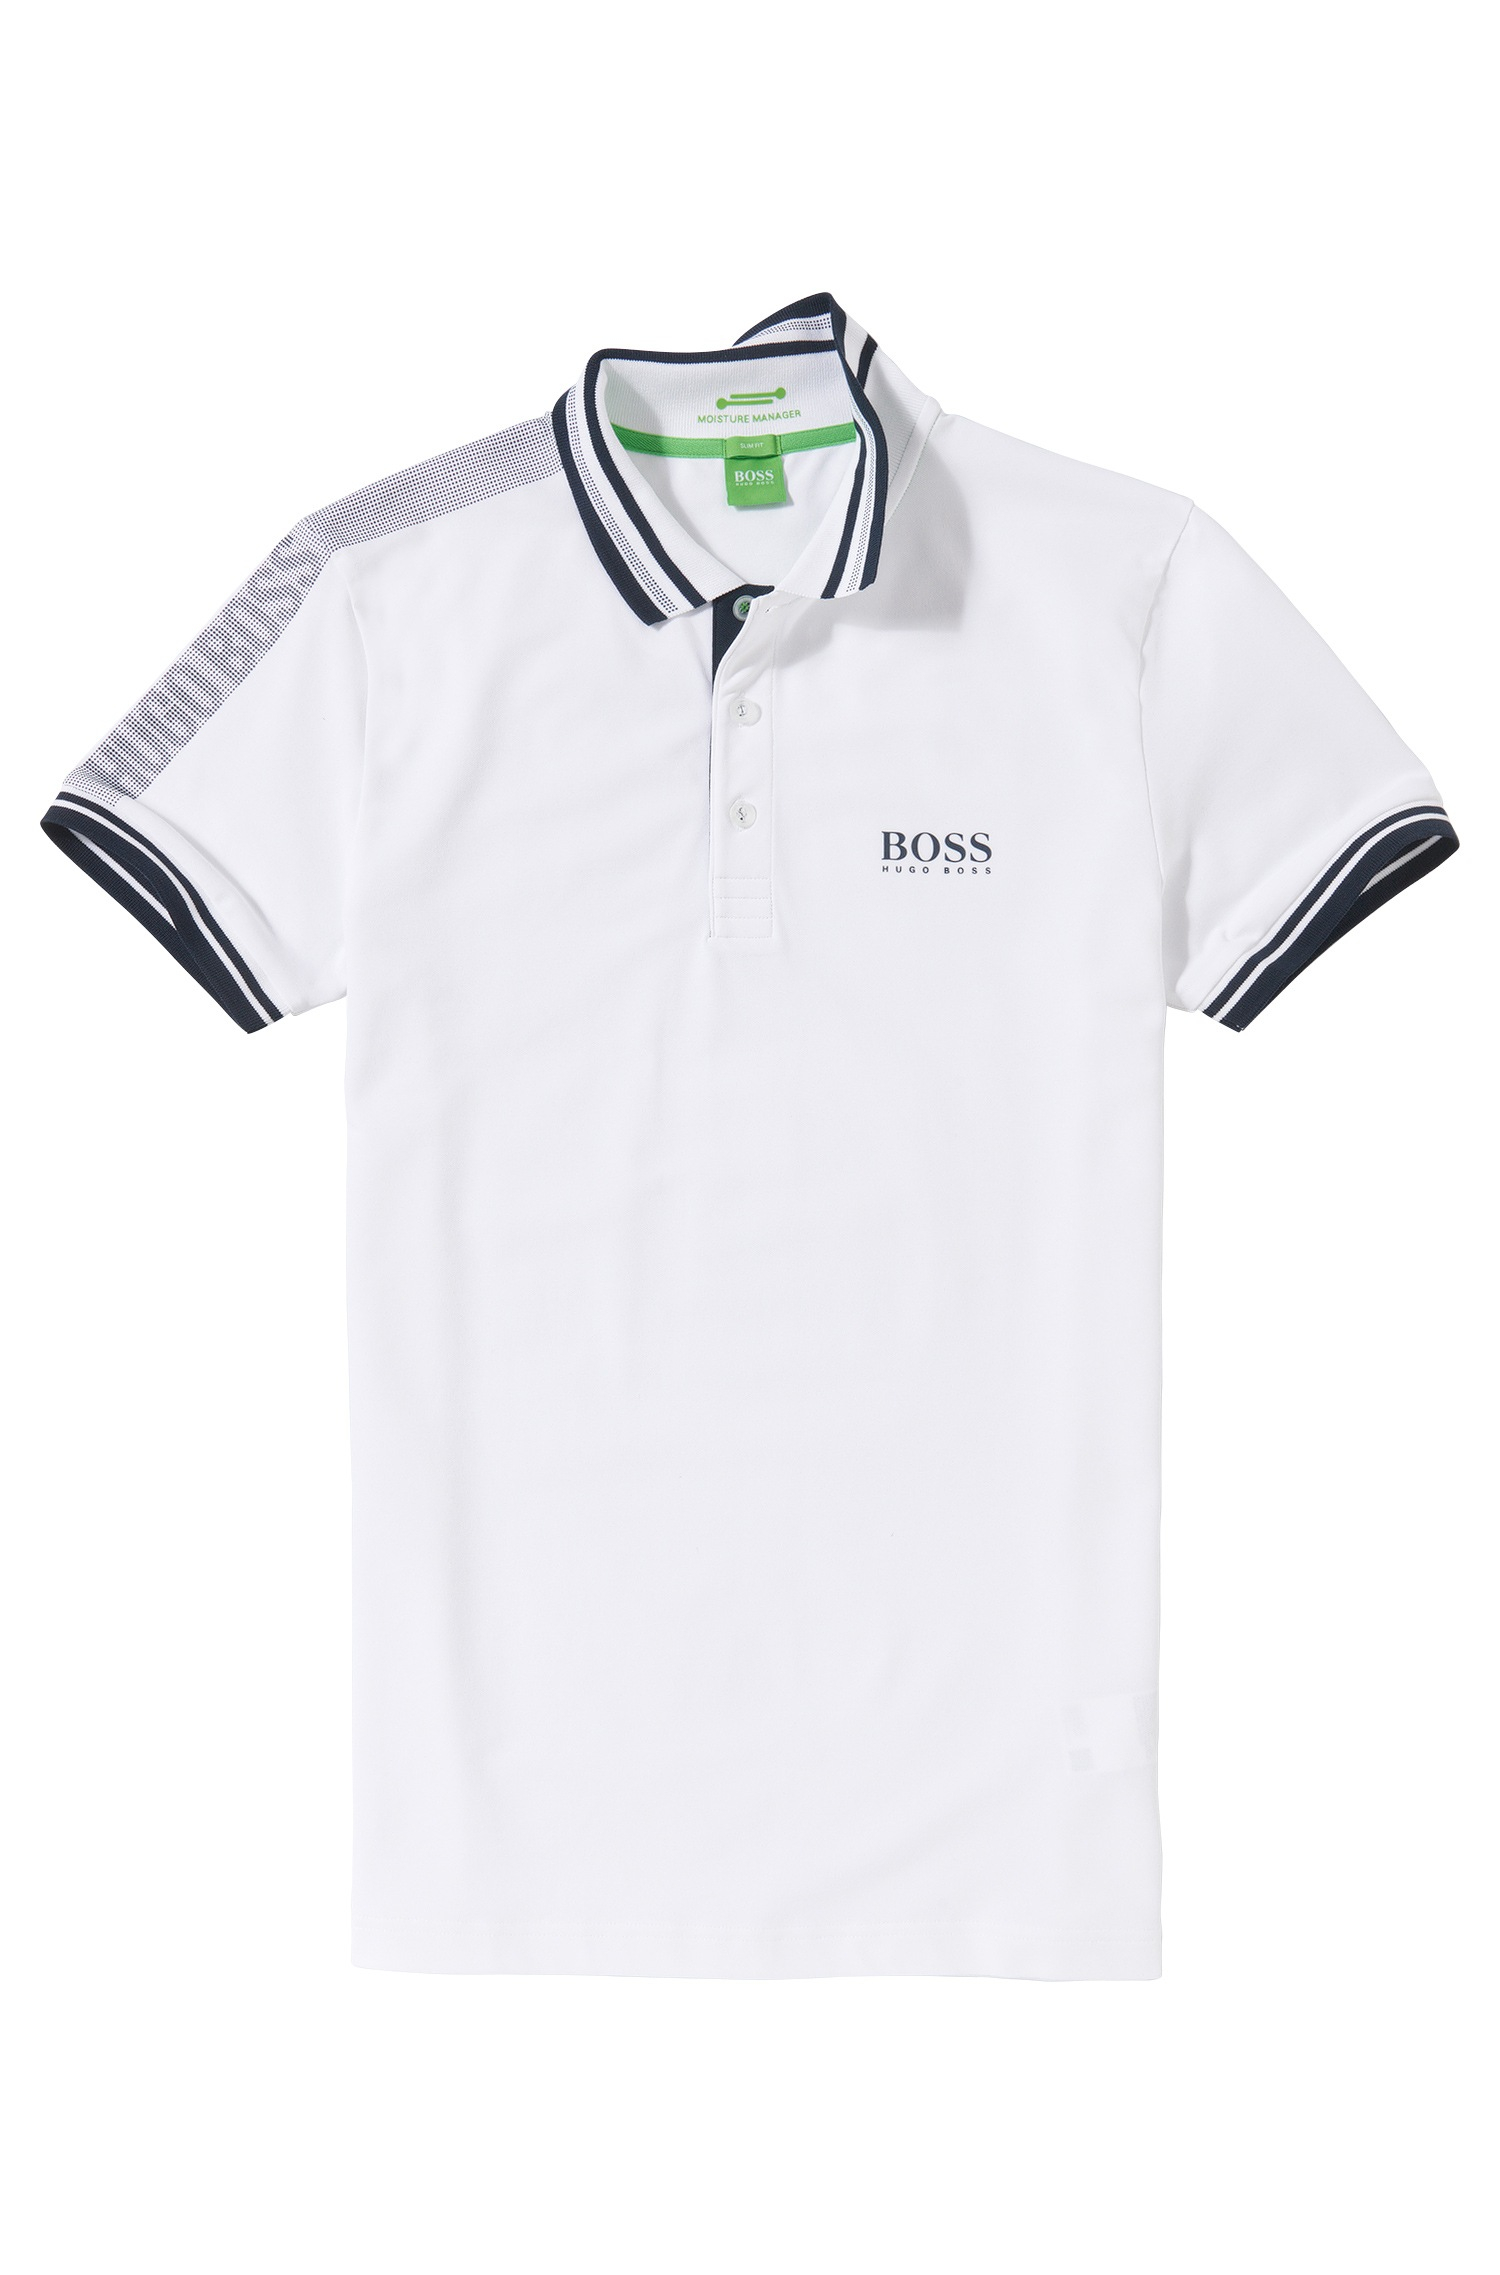 75f27639 BOSS Green Slim Fit Golf Polo Shirt 'paule Pro' With Moisture ...